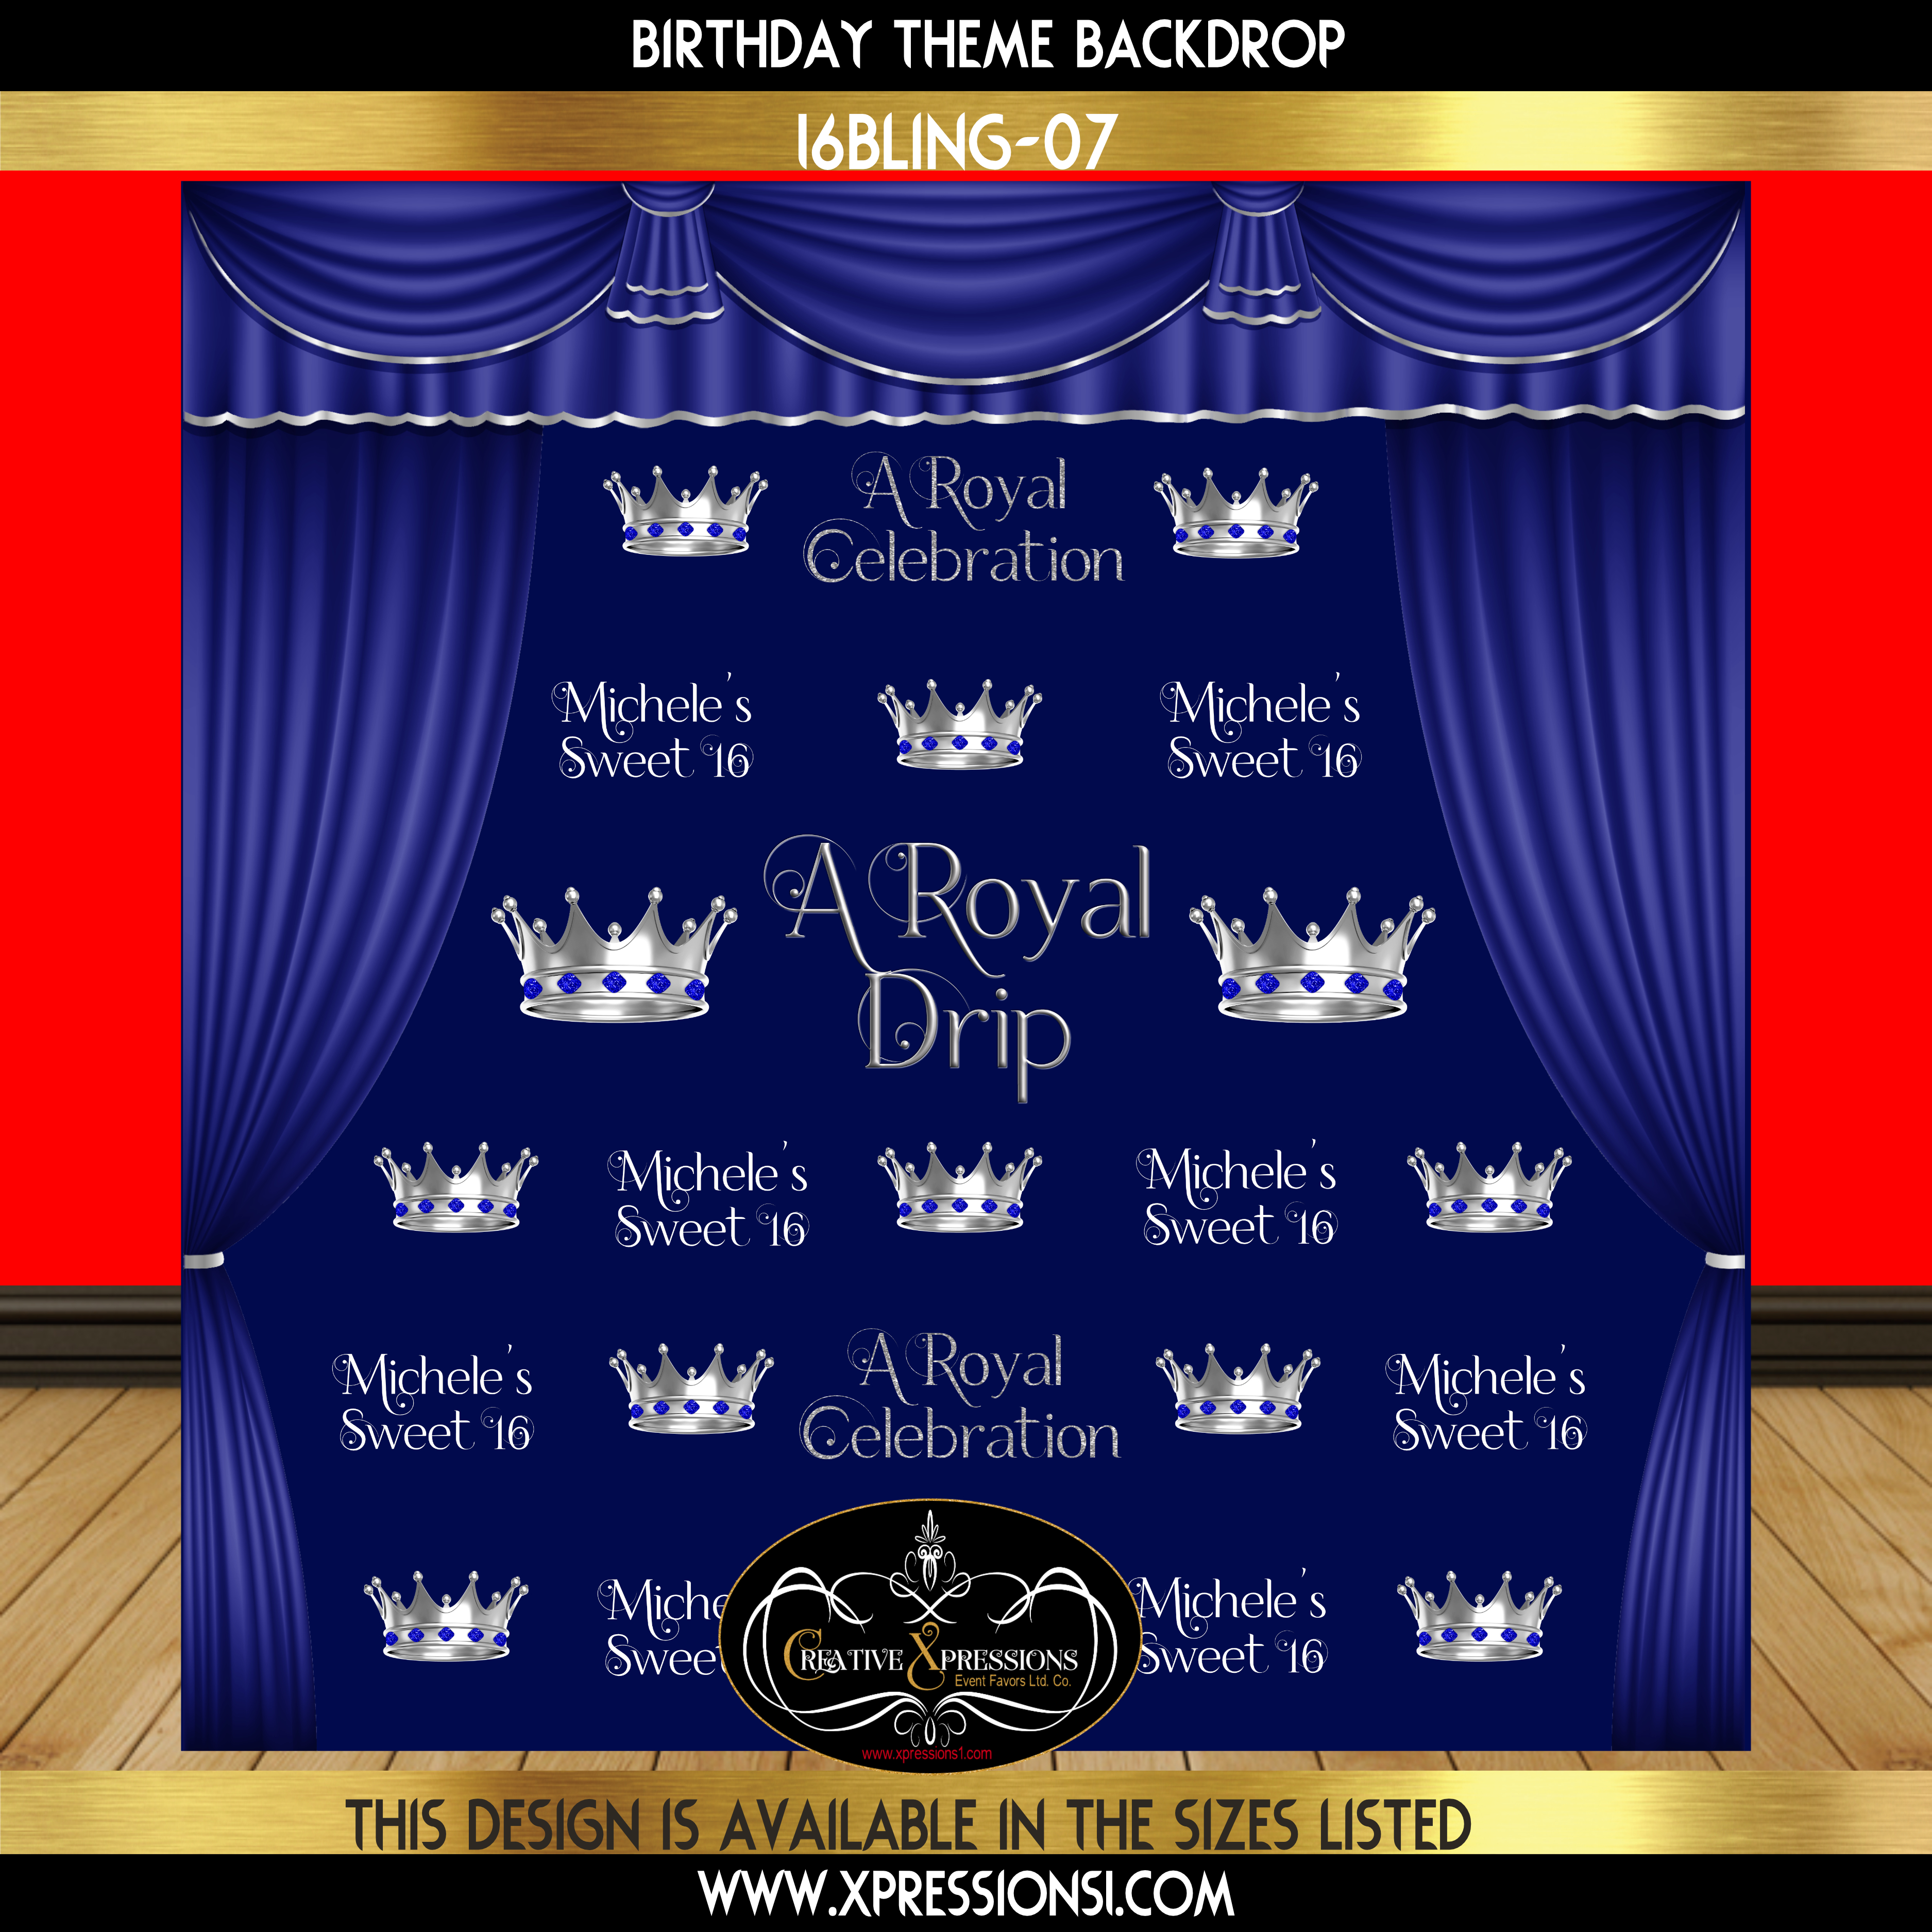 A Royal Drip Sweet 16